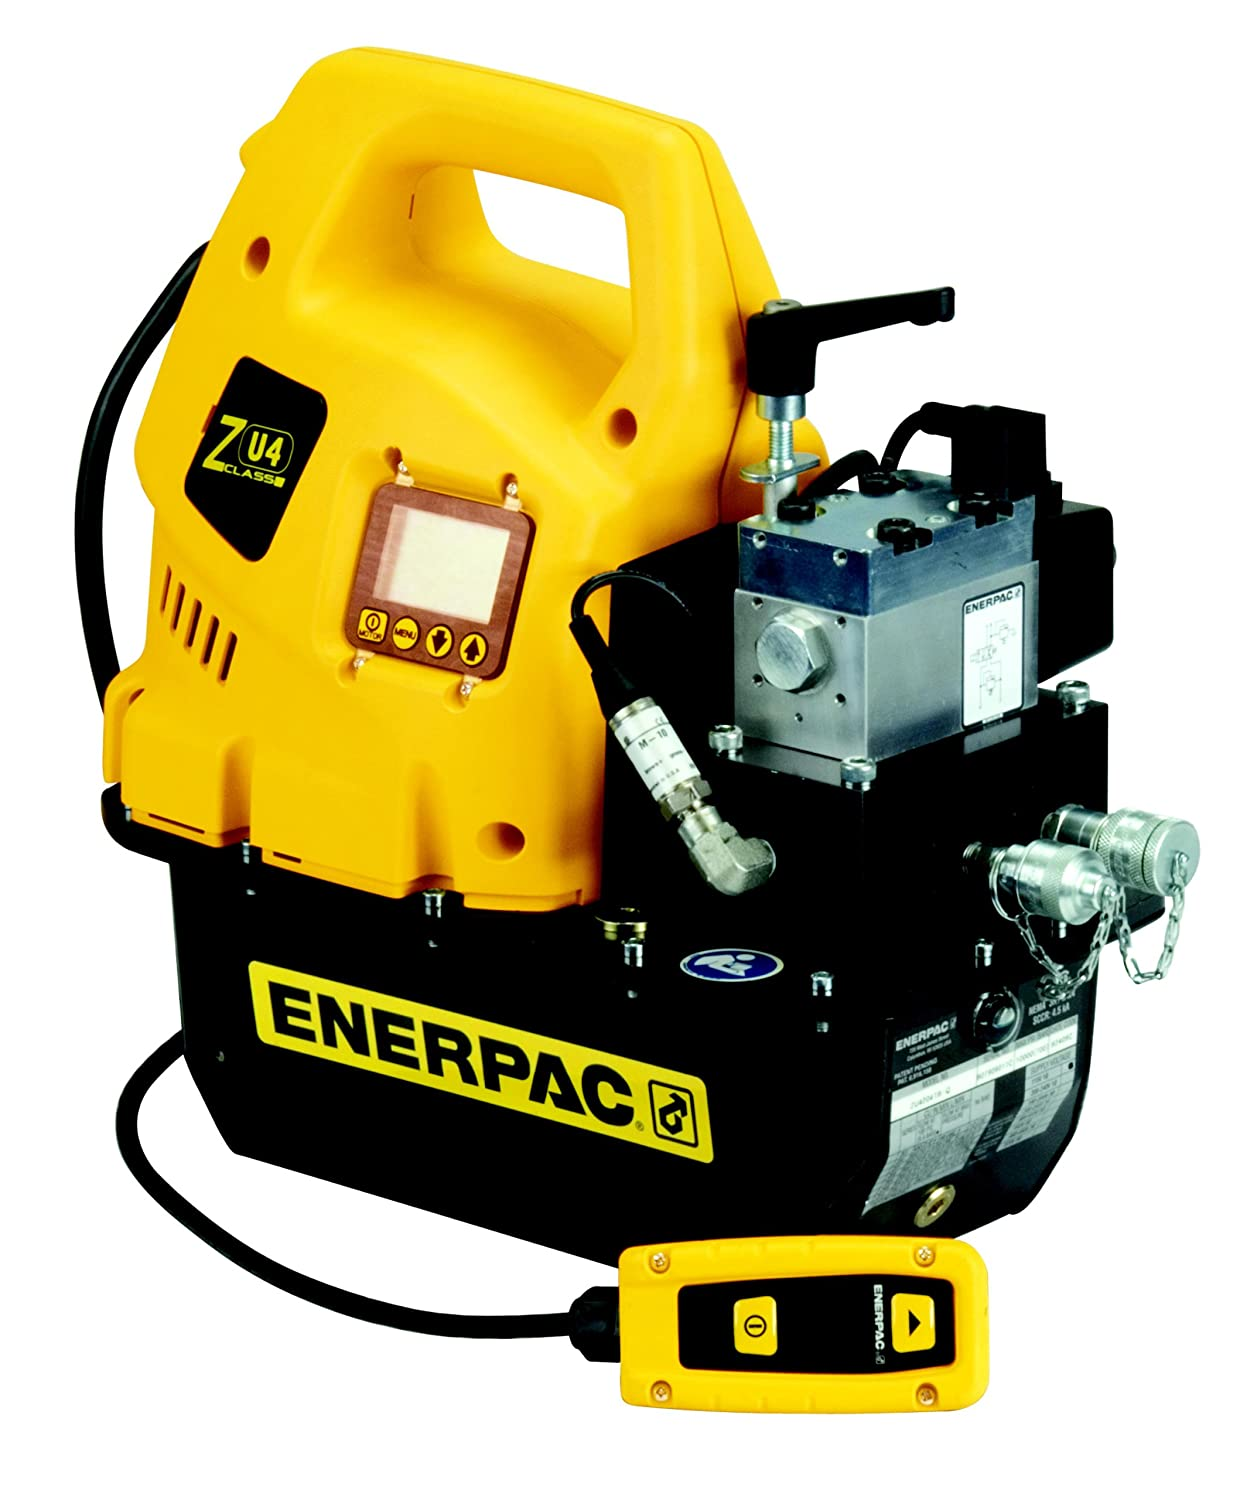 Limited time trial price Enerpac ZU4204TB-QH Classic Torque Wrench Pump VE42Q Valve Year-end annual account with